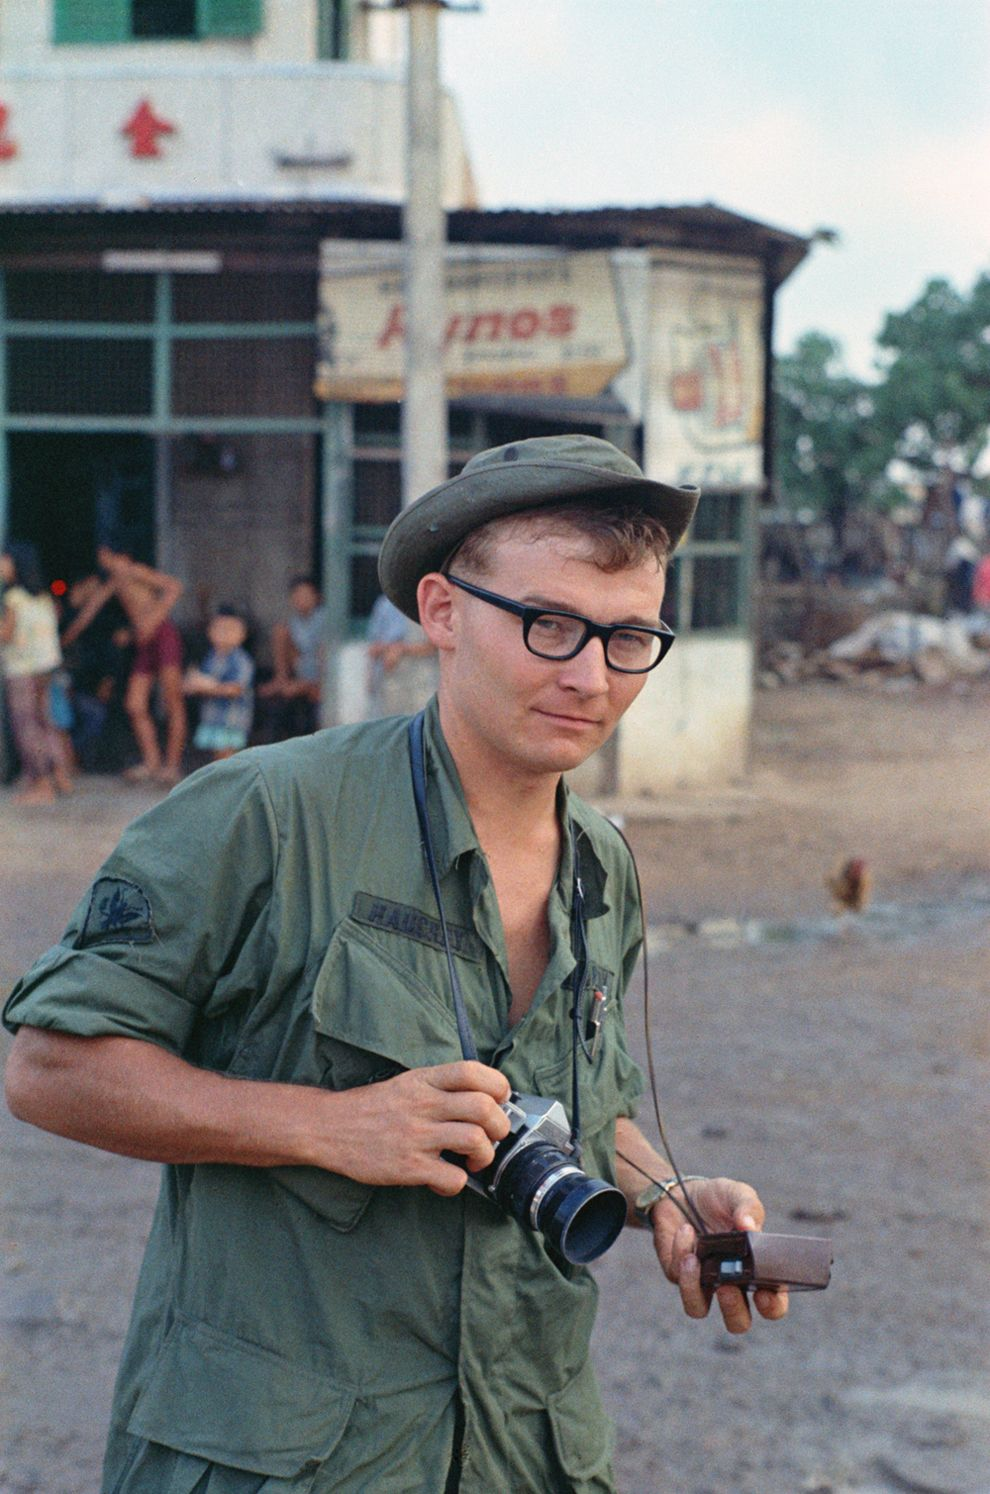 a6dde9df9bd Charlie Houghey was drafted into the US Army in October of 1967. He was 24